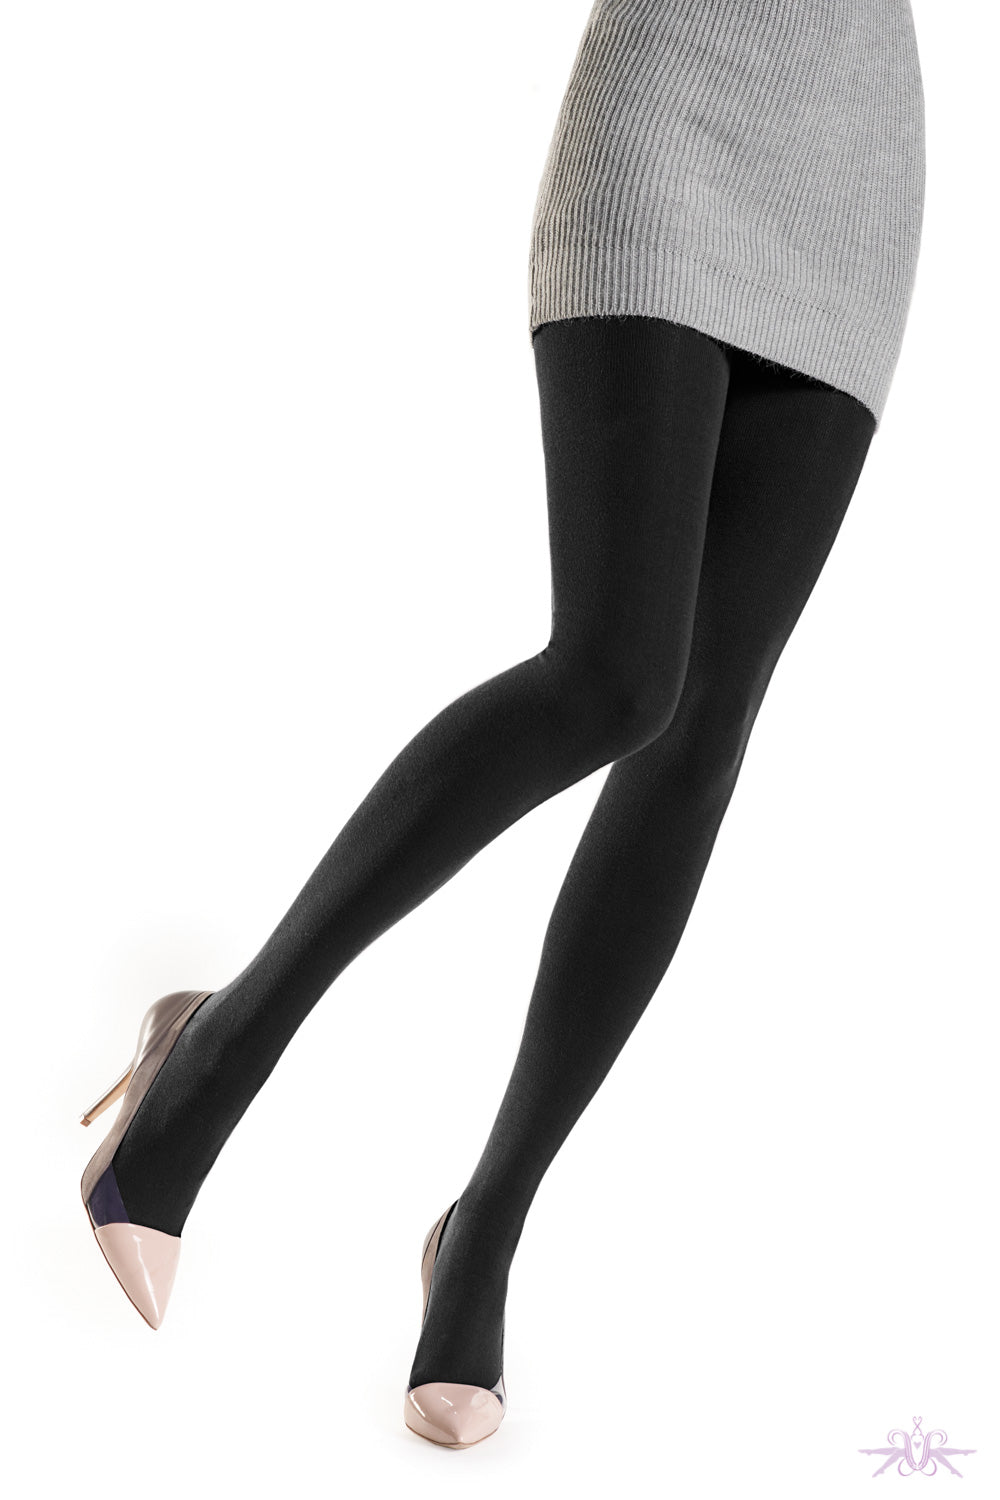 Oroblu Natural Fibres Cynthia Tights - Mayfair Stockings